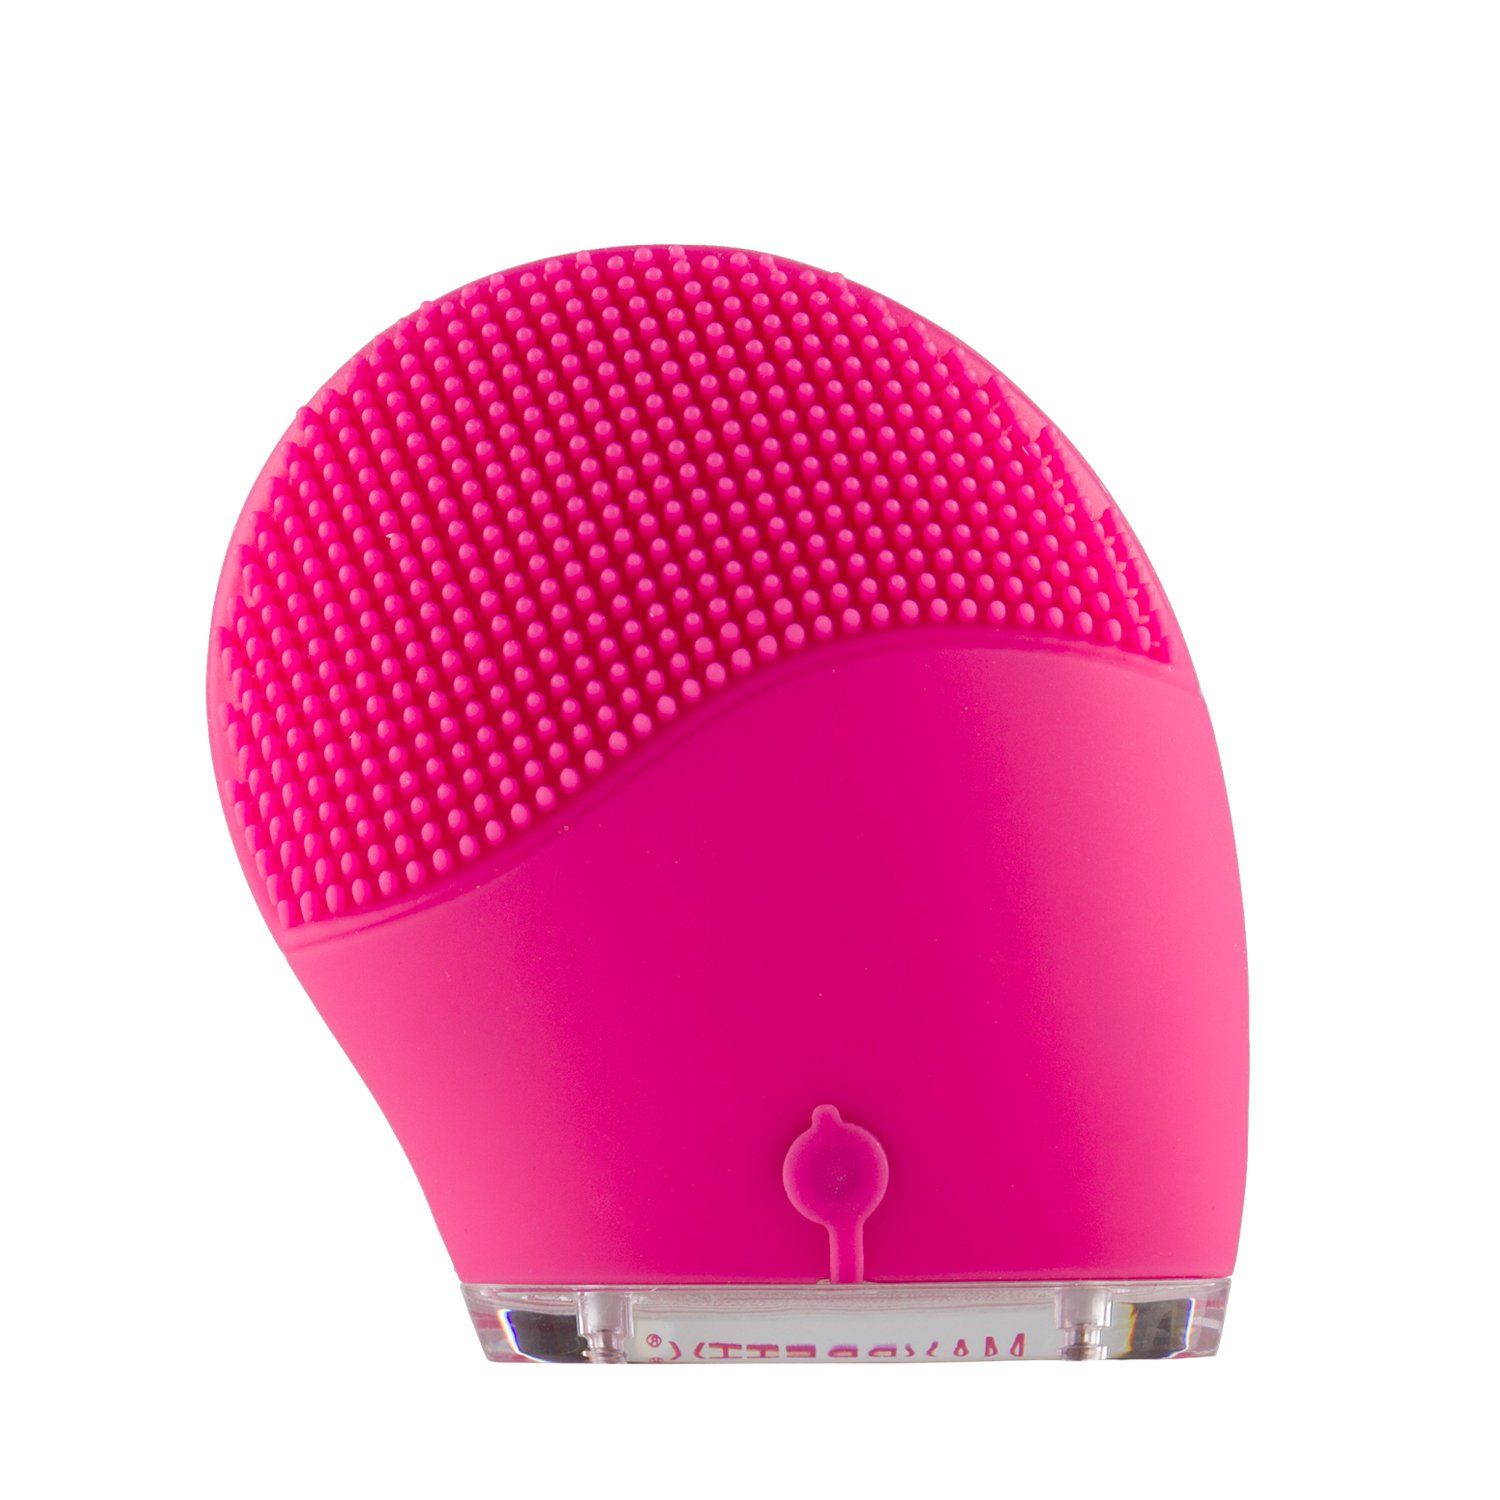 Photo of Maxpretty Silicone Electric Waterproof Sonic Facial Cleansing Brush Makeup Facia…